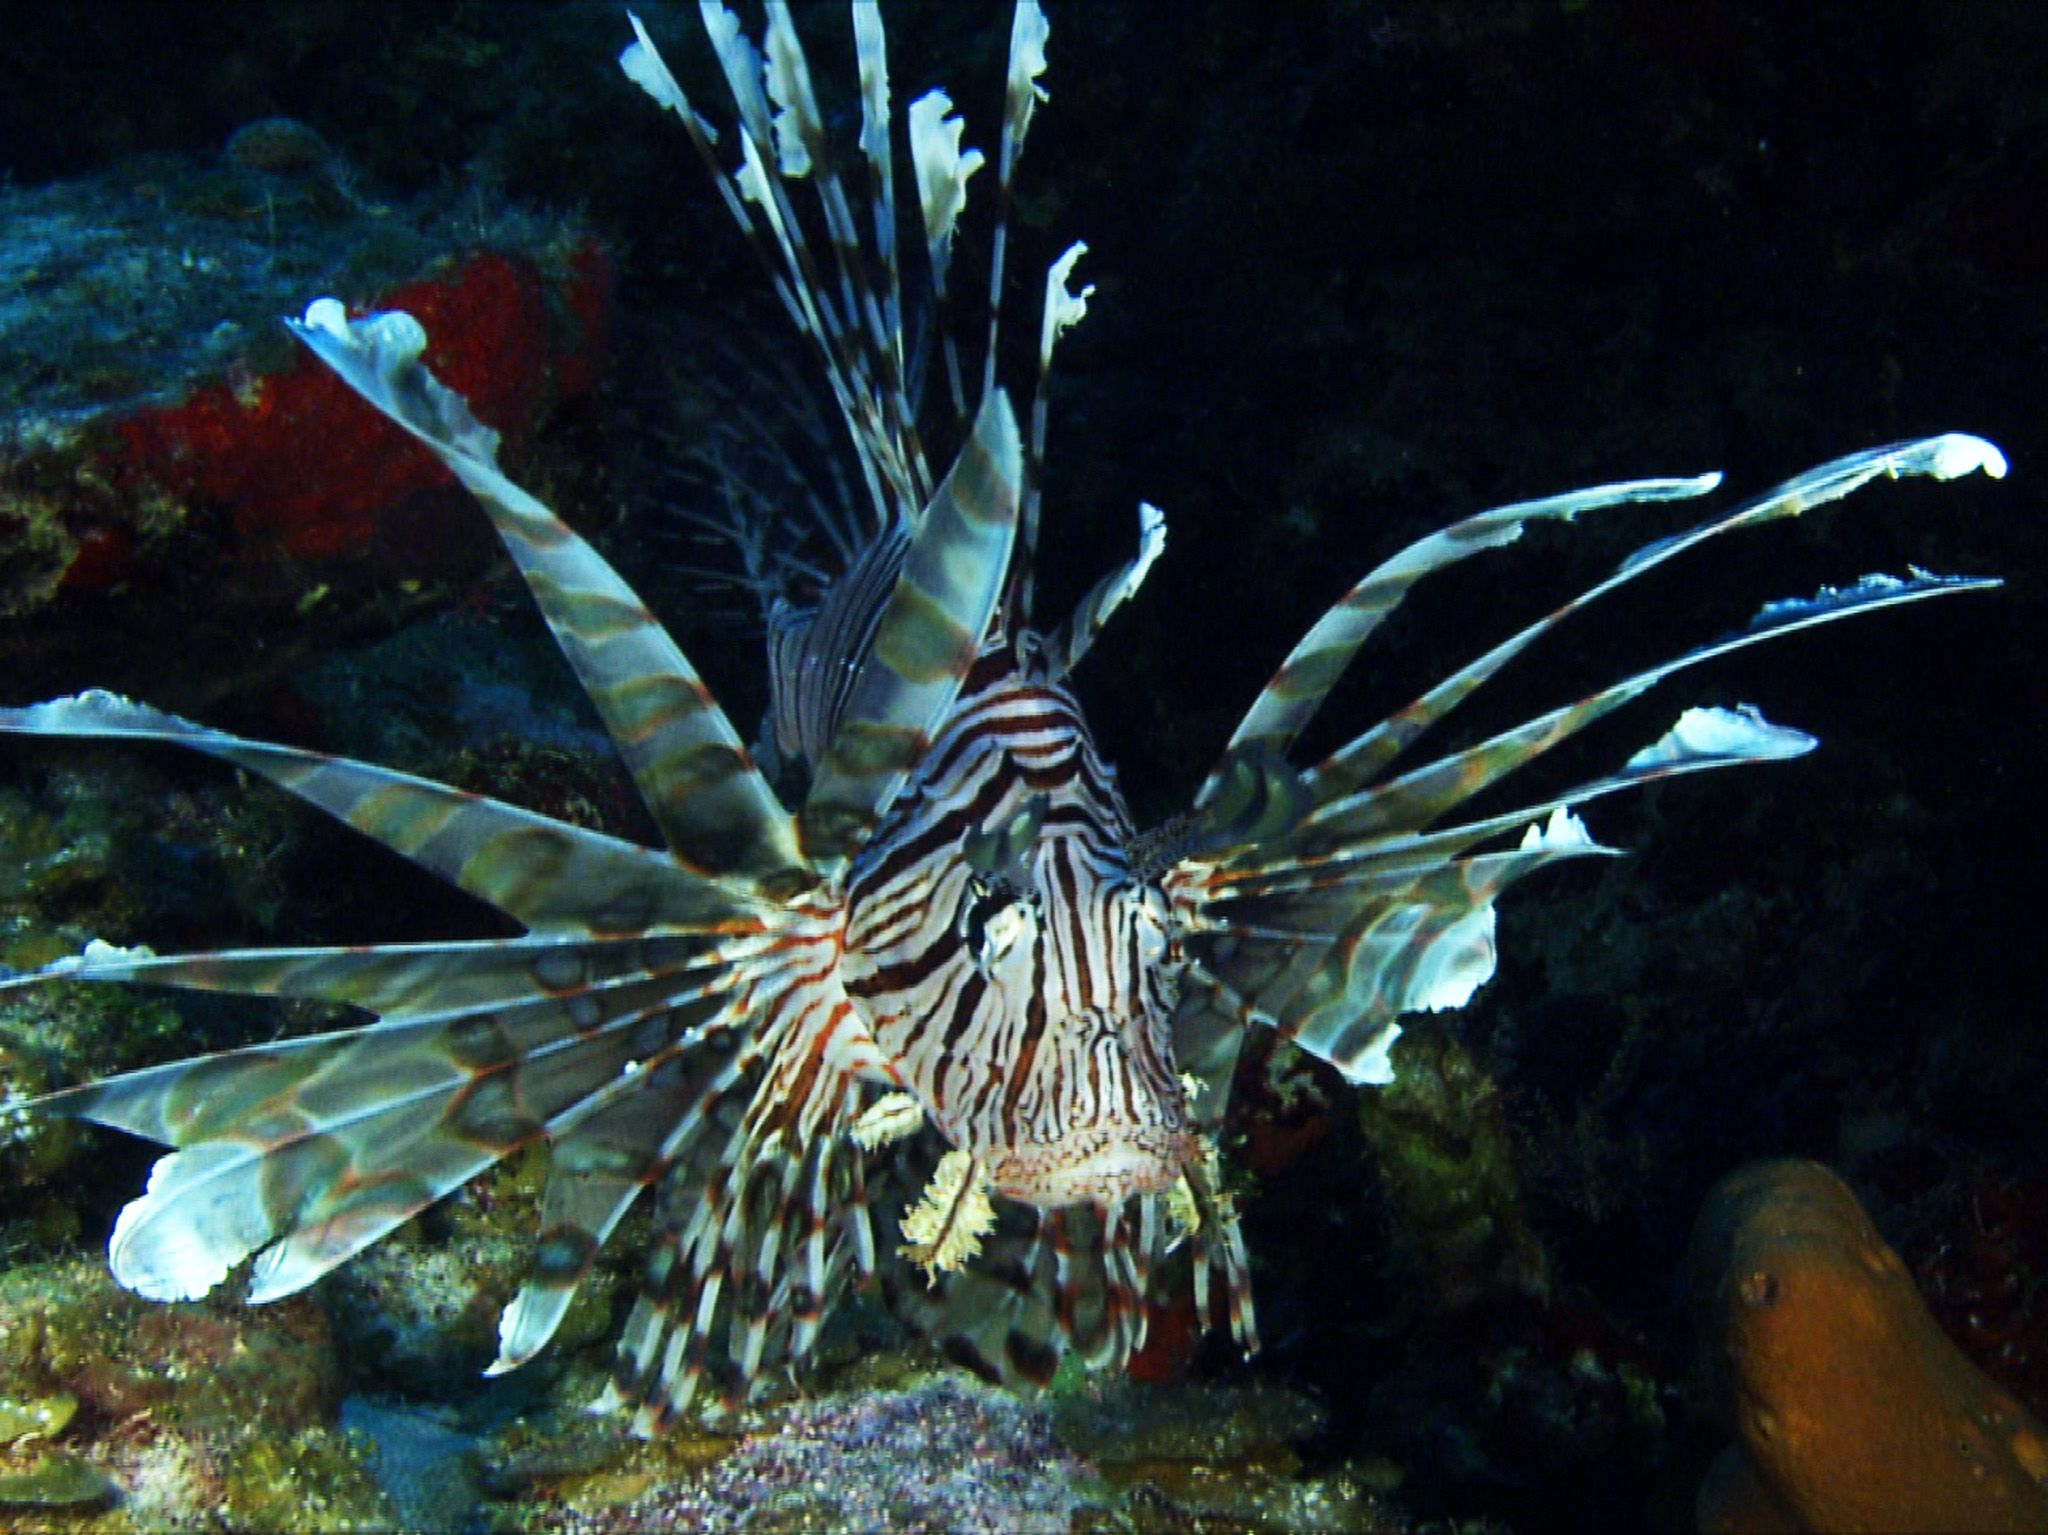 Ponta do Ouro, Mozambique, Africa:  Lionfish swimming along reef.  This image is from Africa's... [Photo of the day - February 2019]